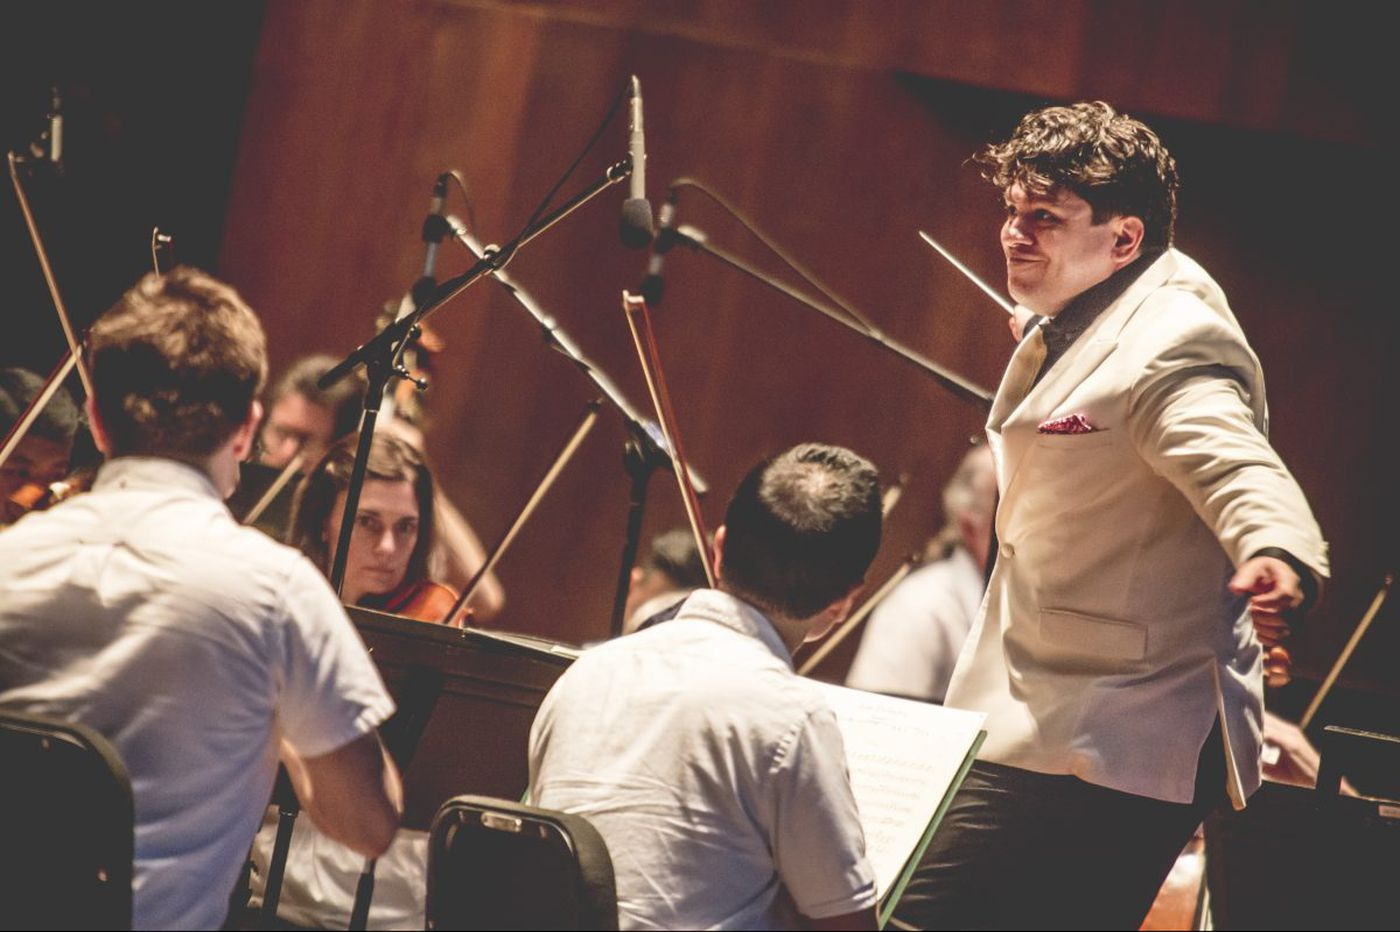 Philadelphia Orchestra by request leaves audience marching, not buzzing